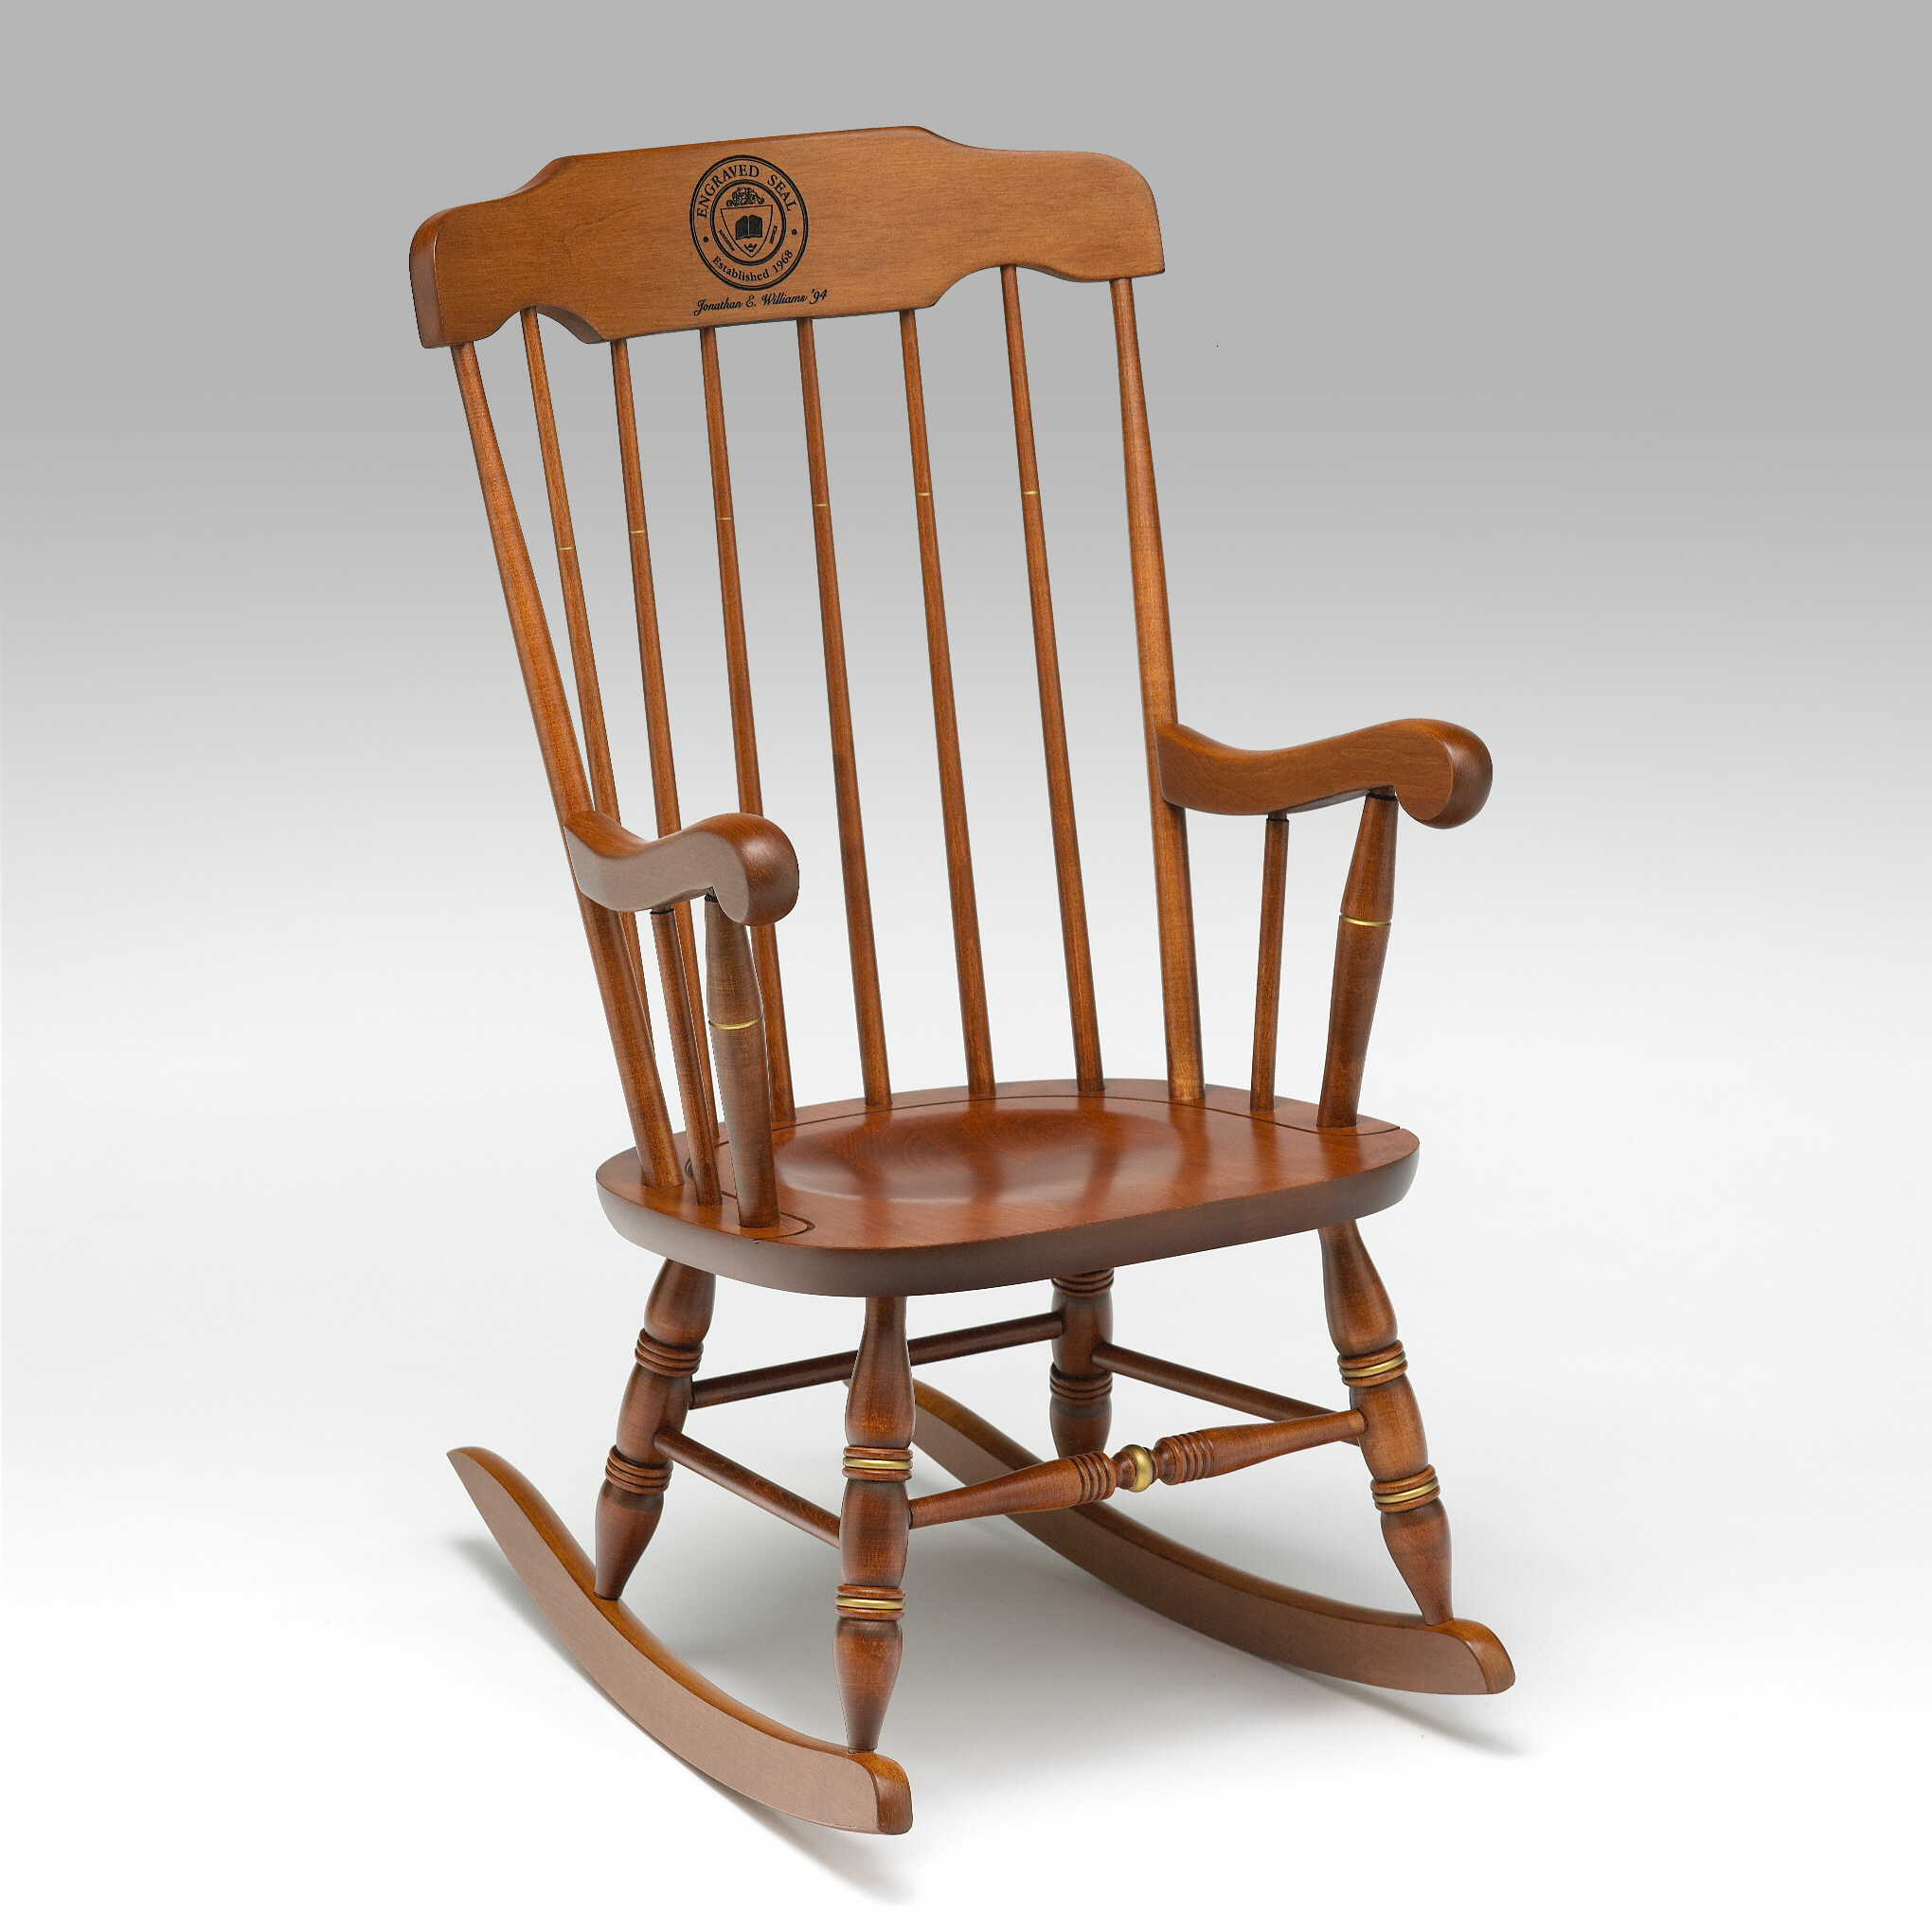 Outstanding I Dont Need No Rocking Chair Mn Rube Chat Pdpeps Interior Chair Design Pdpepsorg